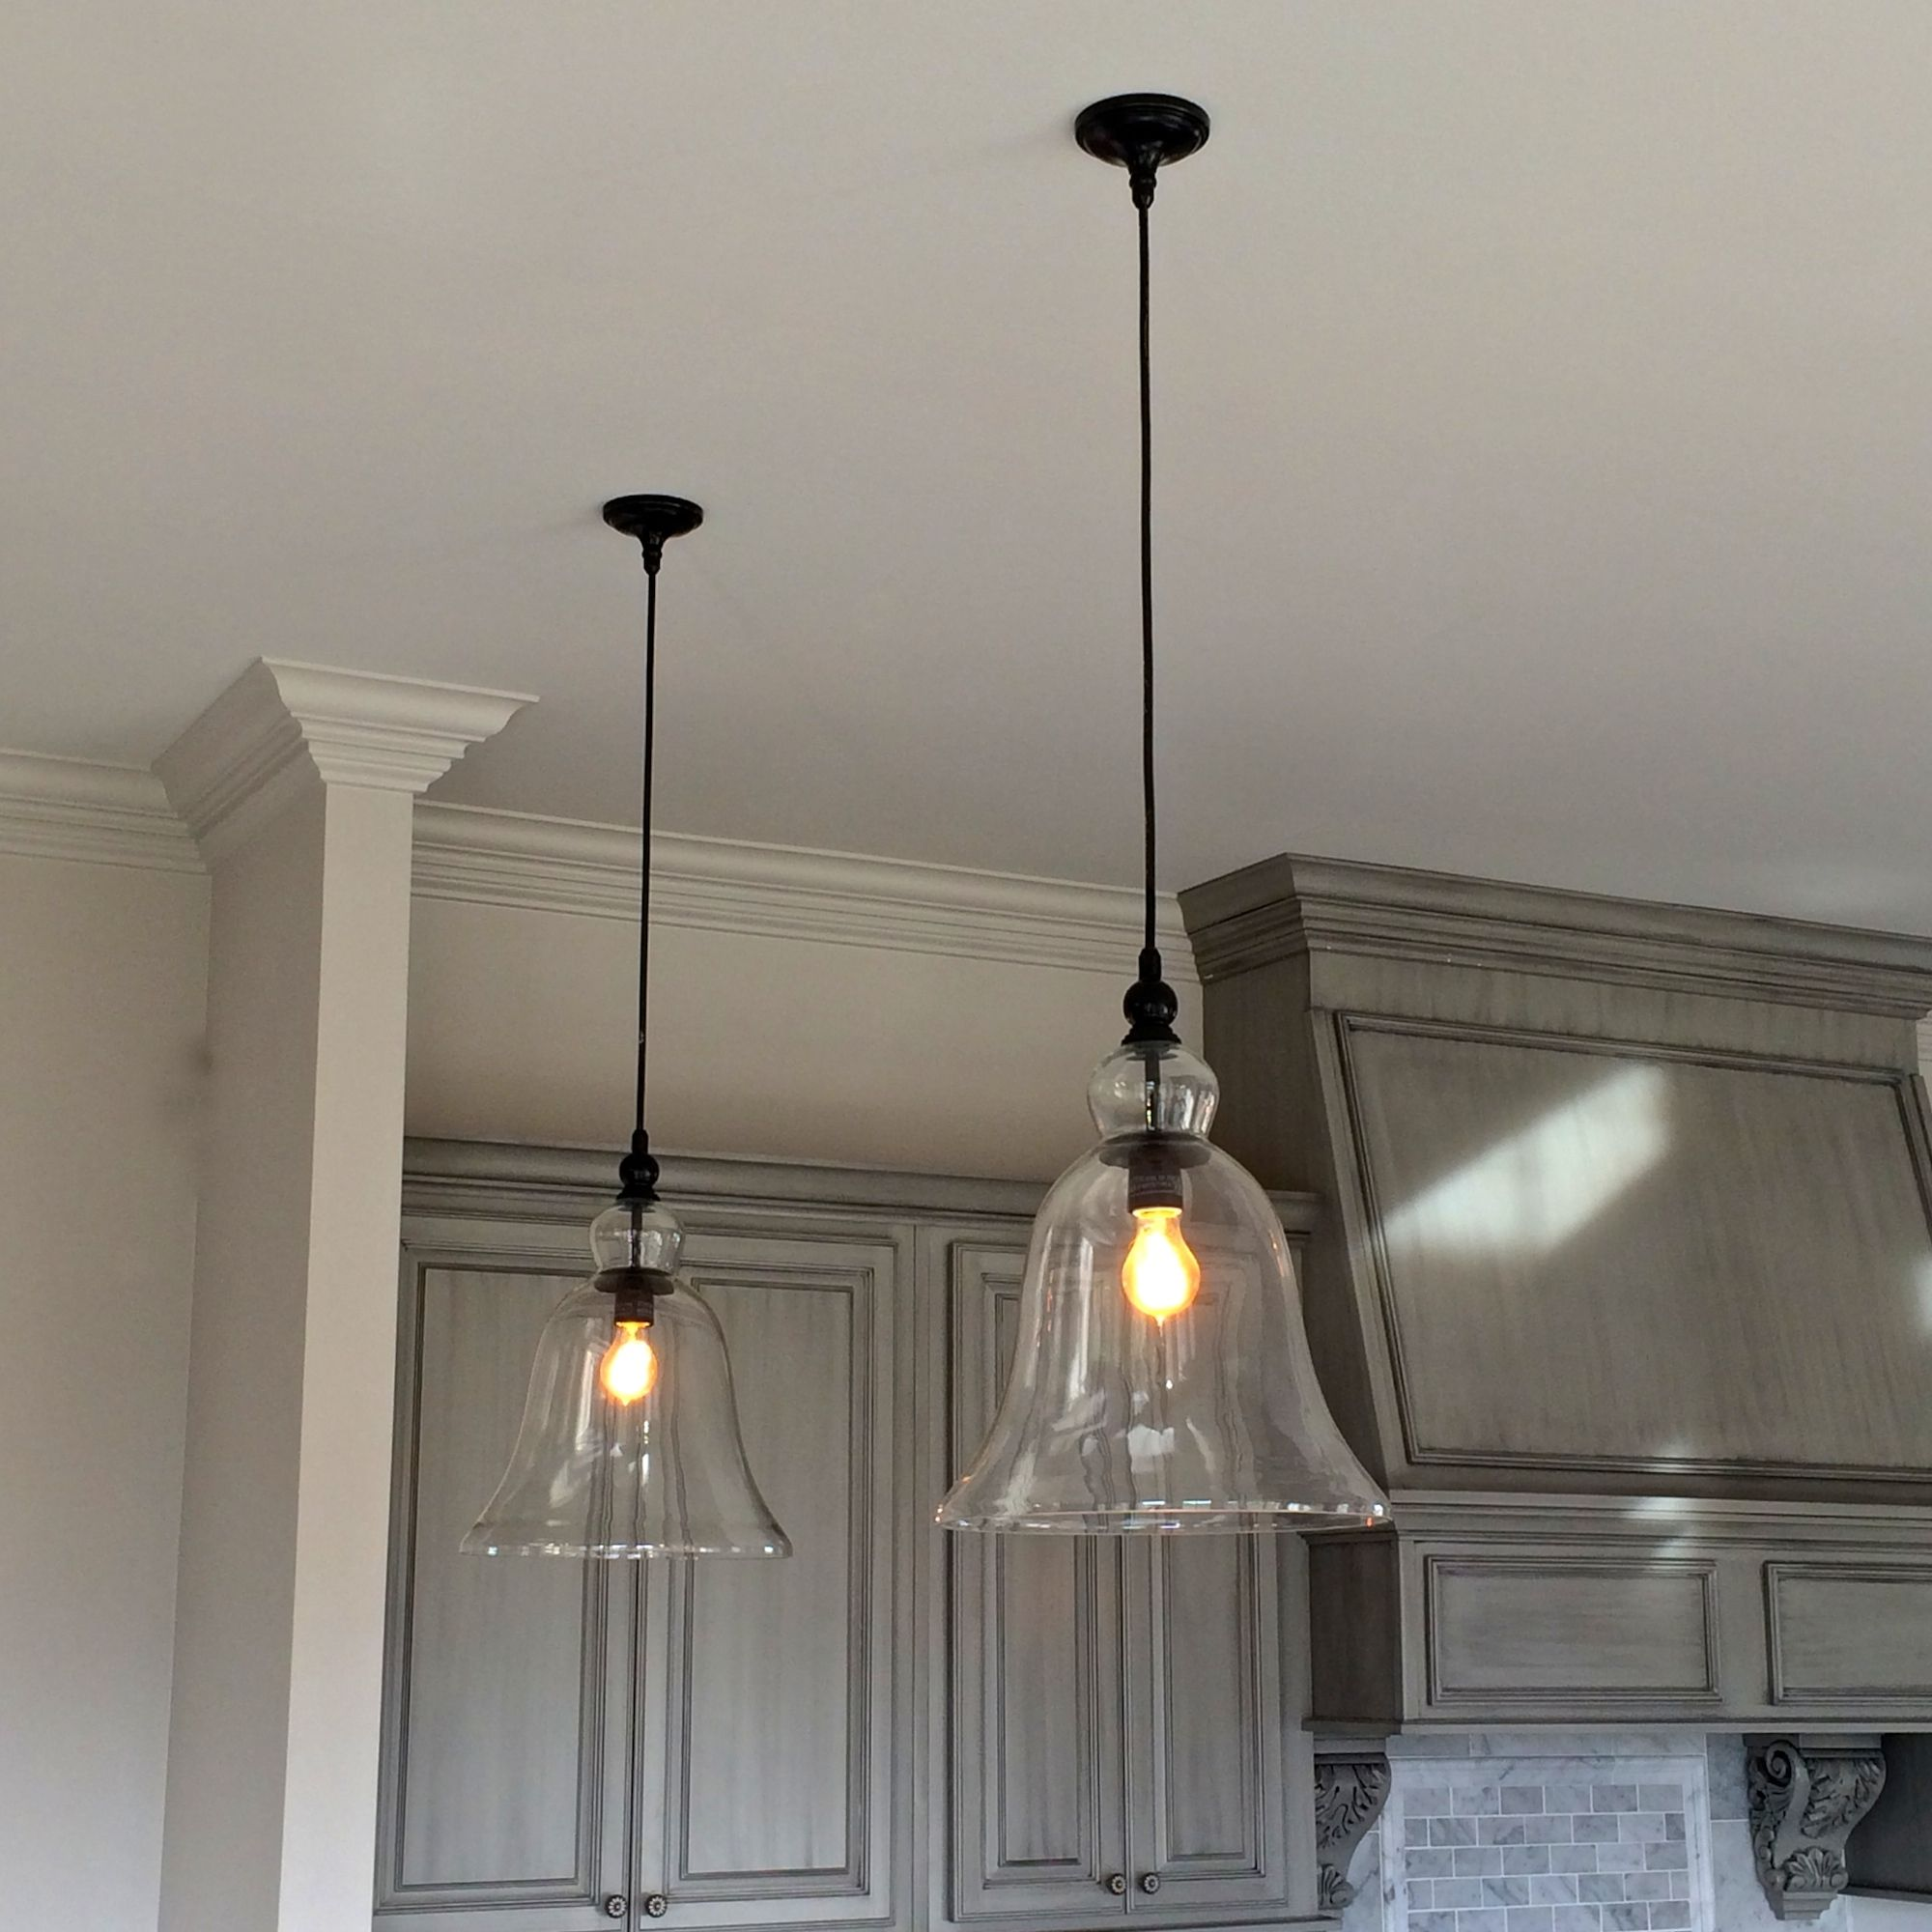 Above kitchen counter large glass bell hanging pendant Pendant lighting for kitchen